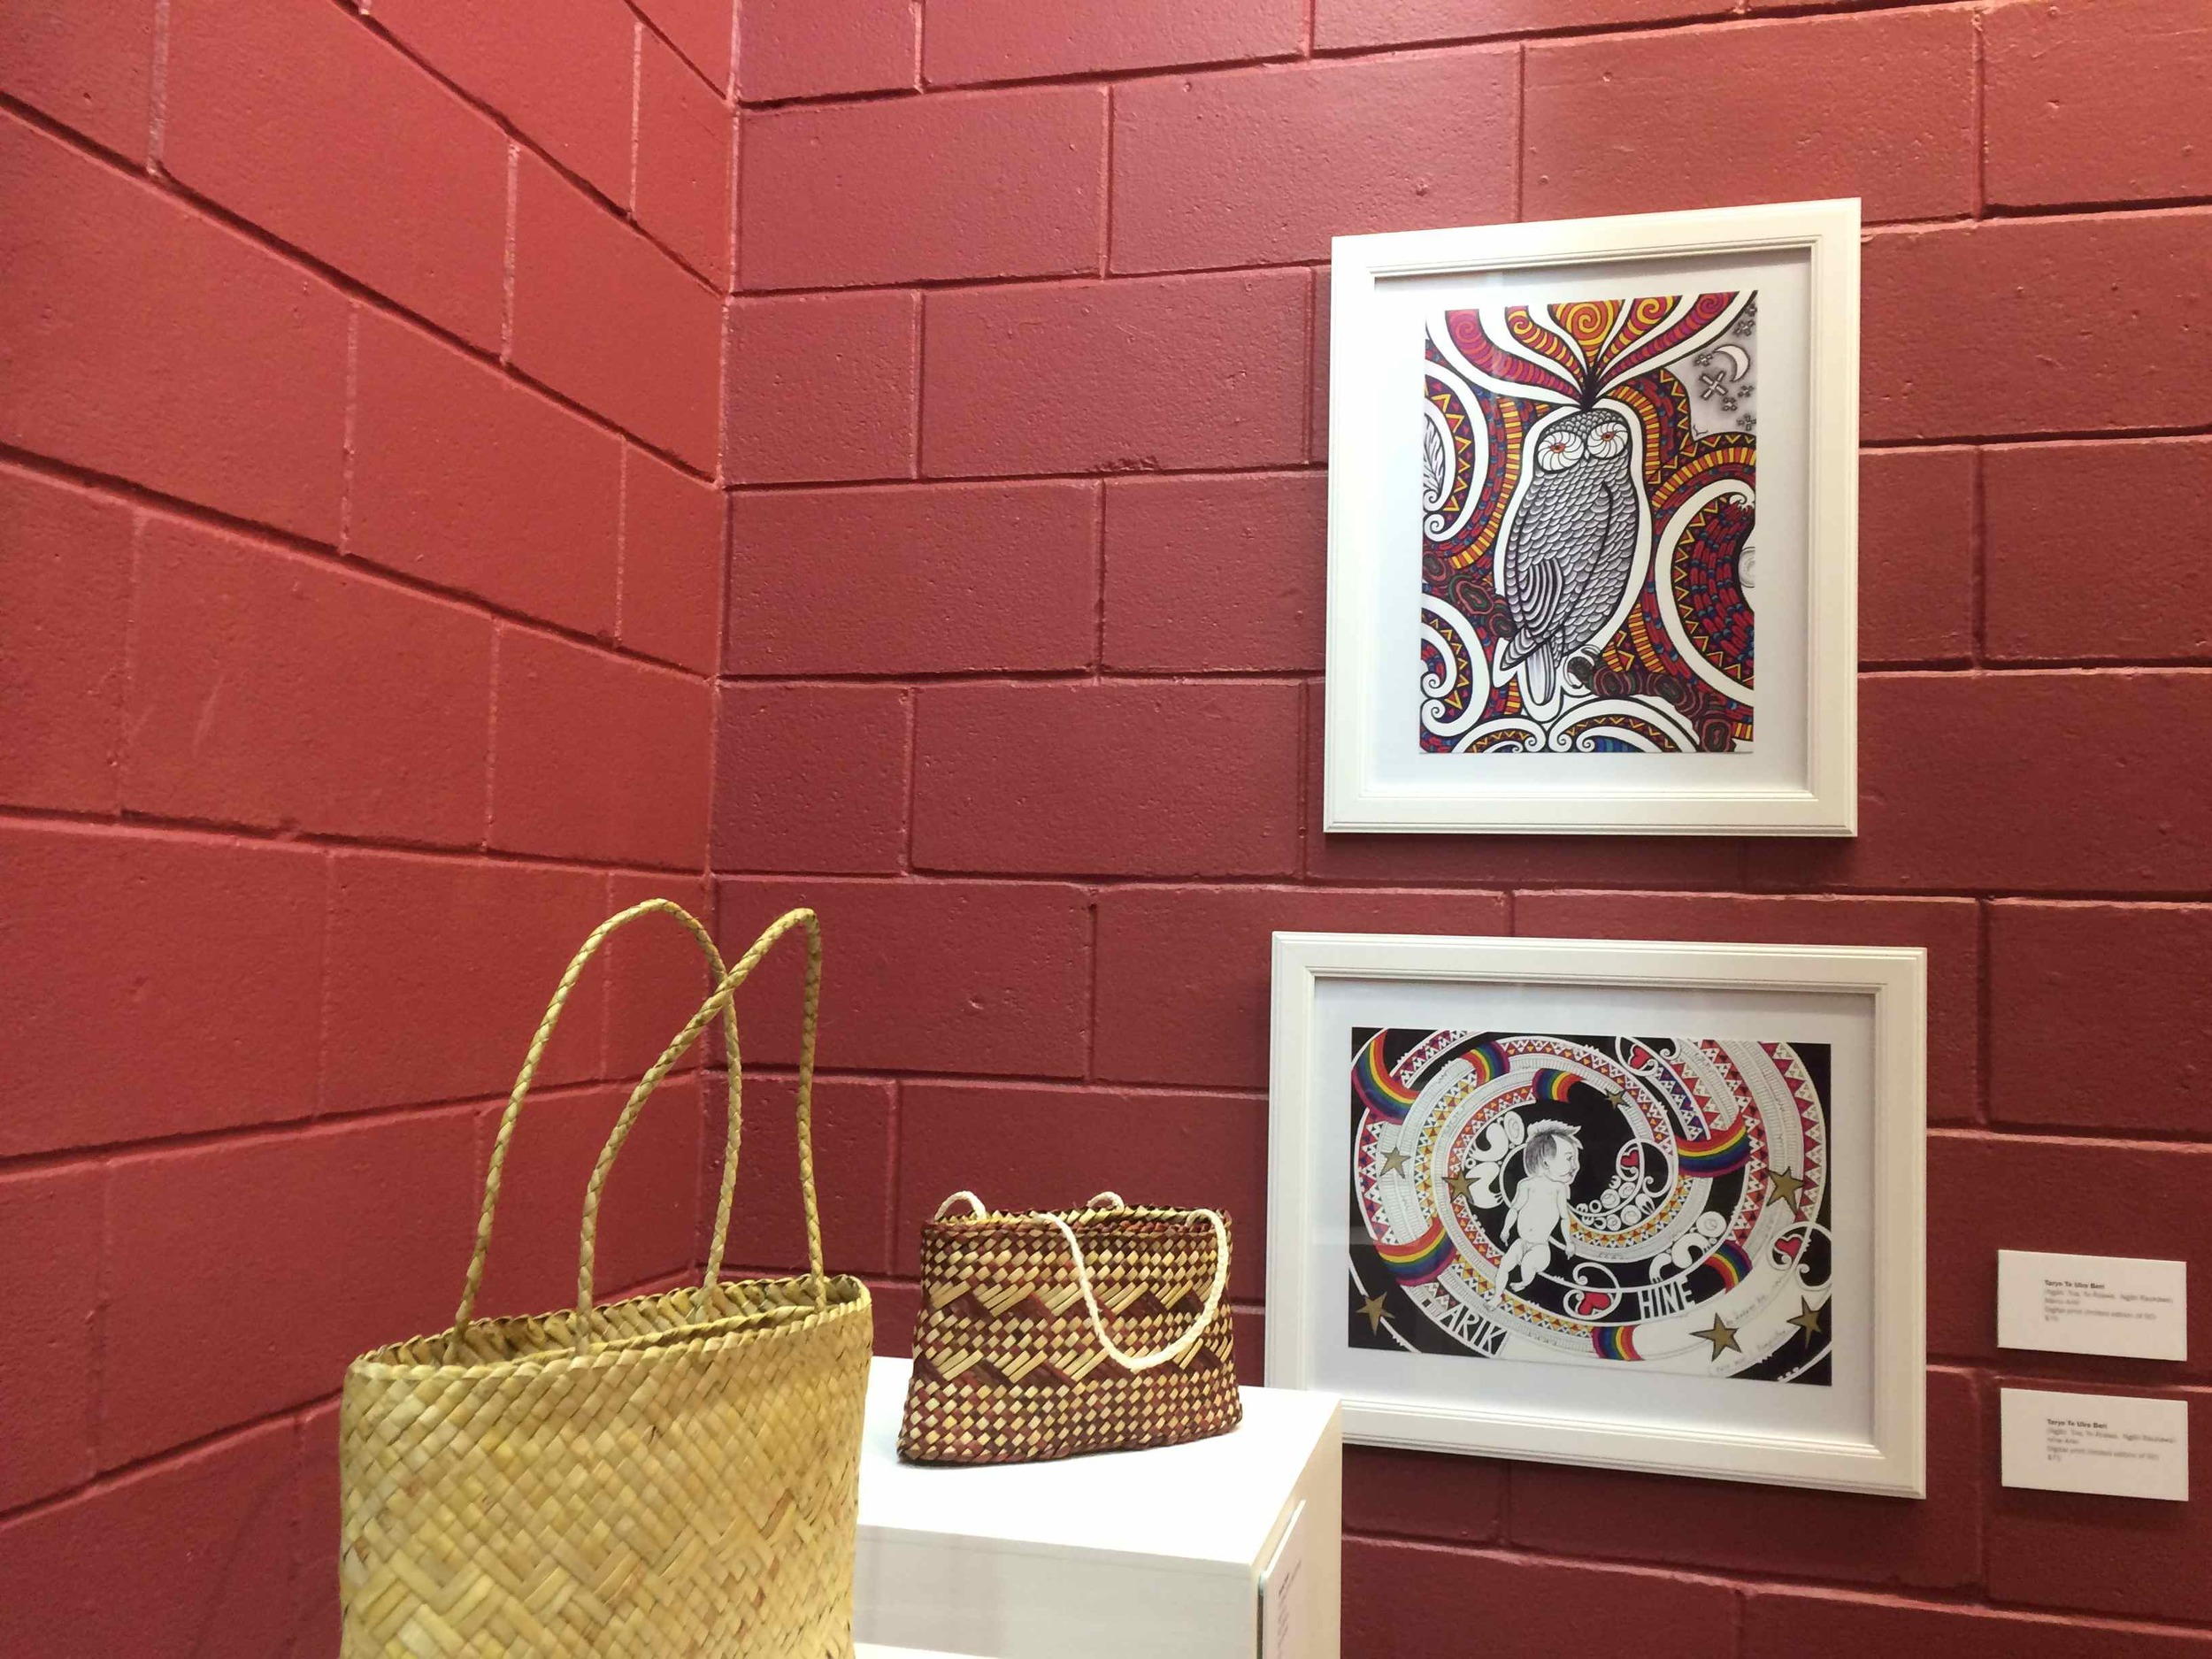 I have two prints on show in the exhibition, 'Manu Ariki' and 'Hine Ariki'. The   kete   shown in the foreground are by Snooks Forster.